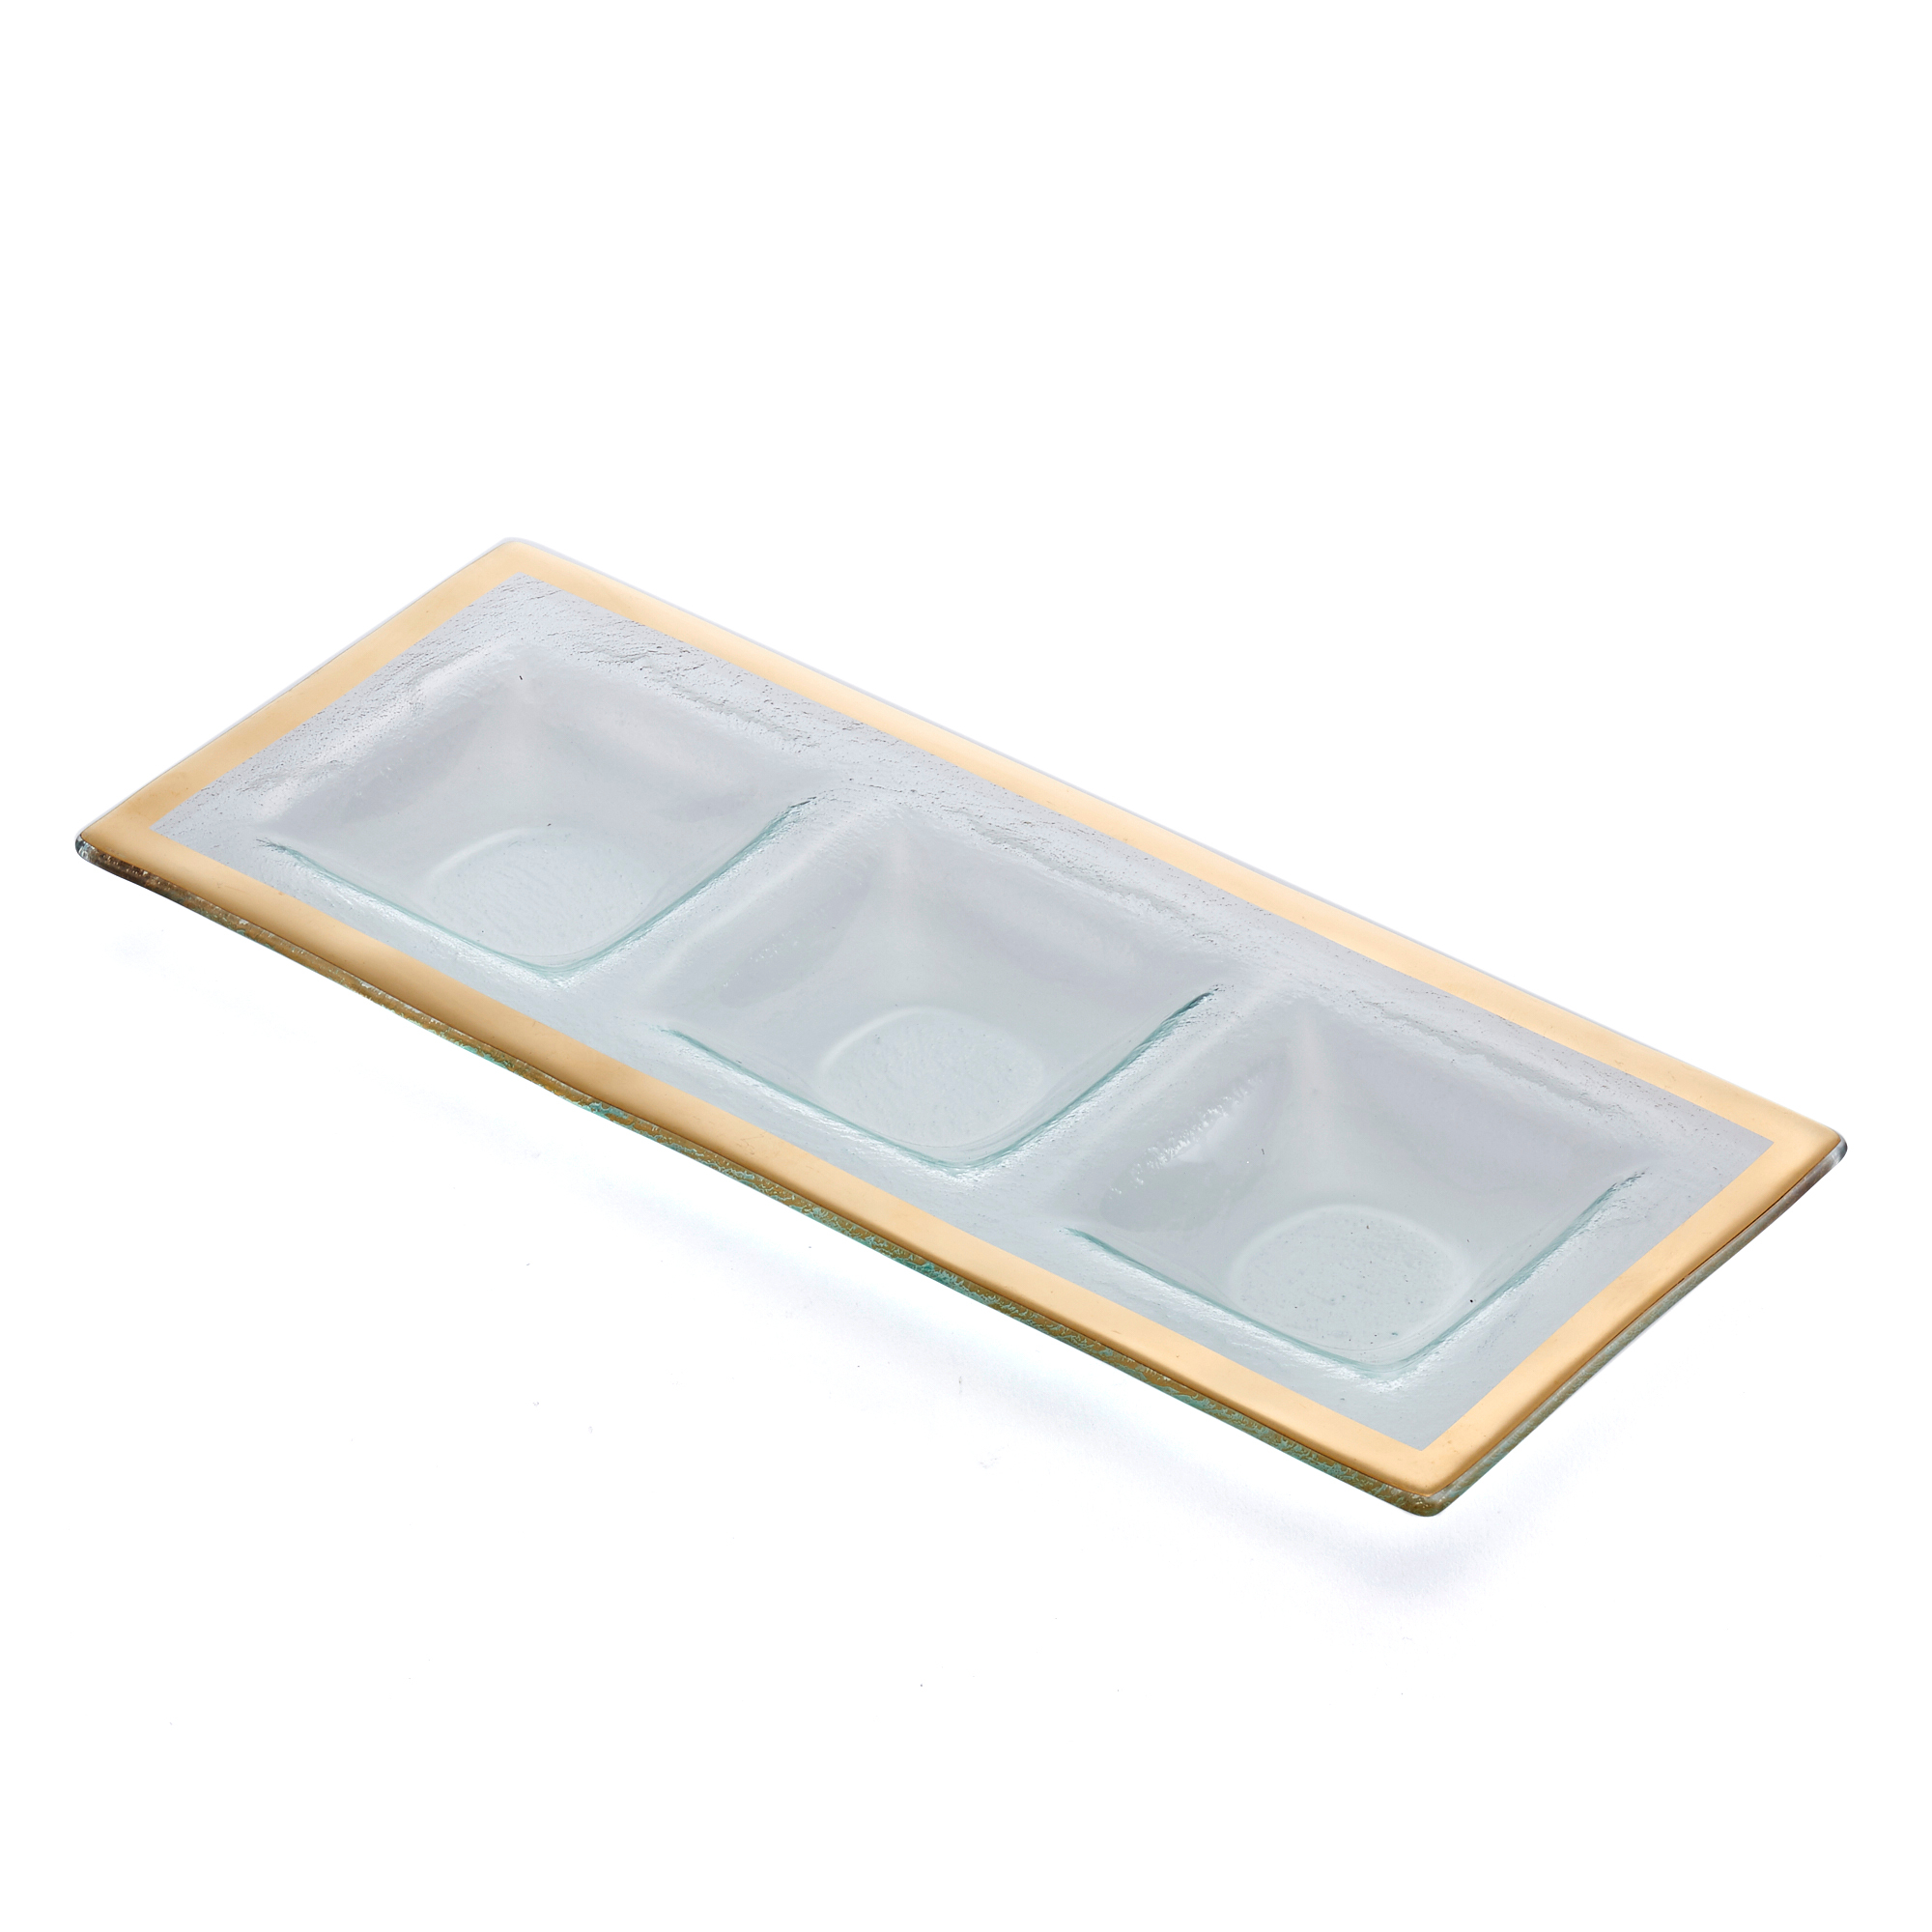 Annieglass Roman Antique 3-Section Tray, Gold